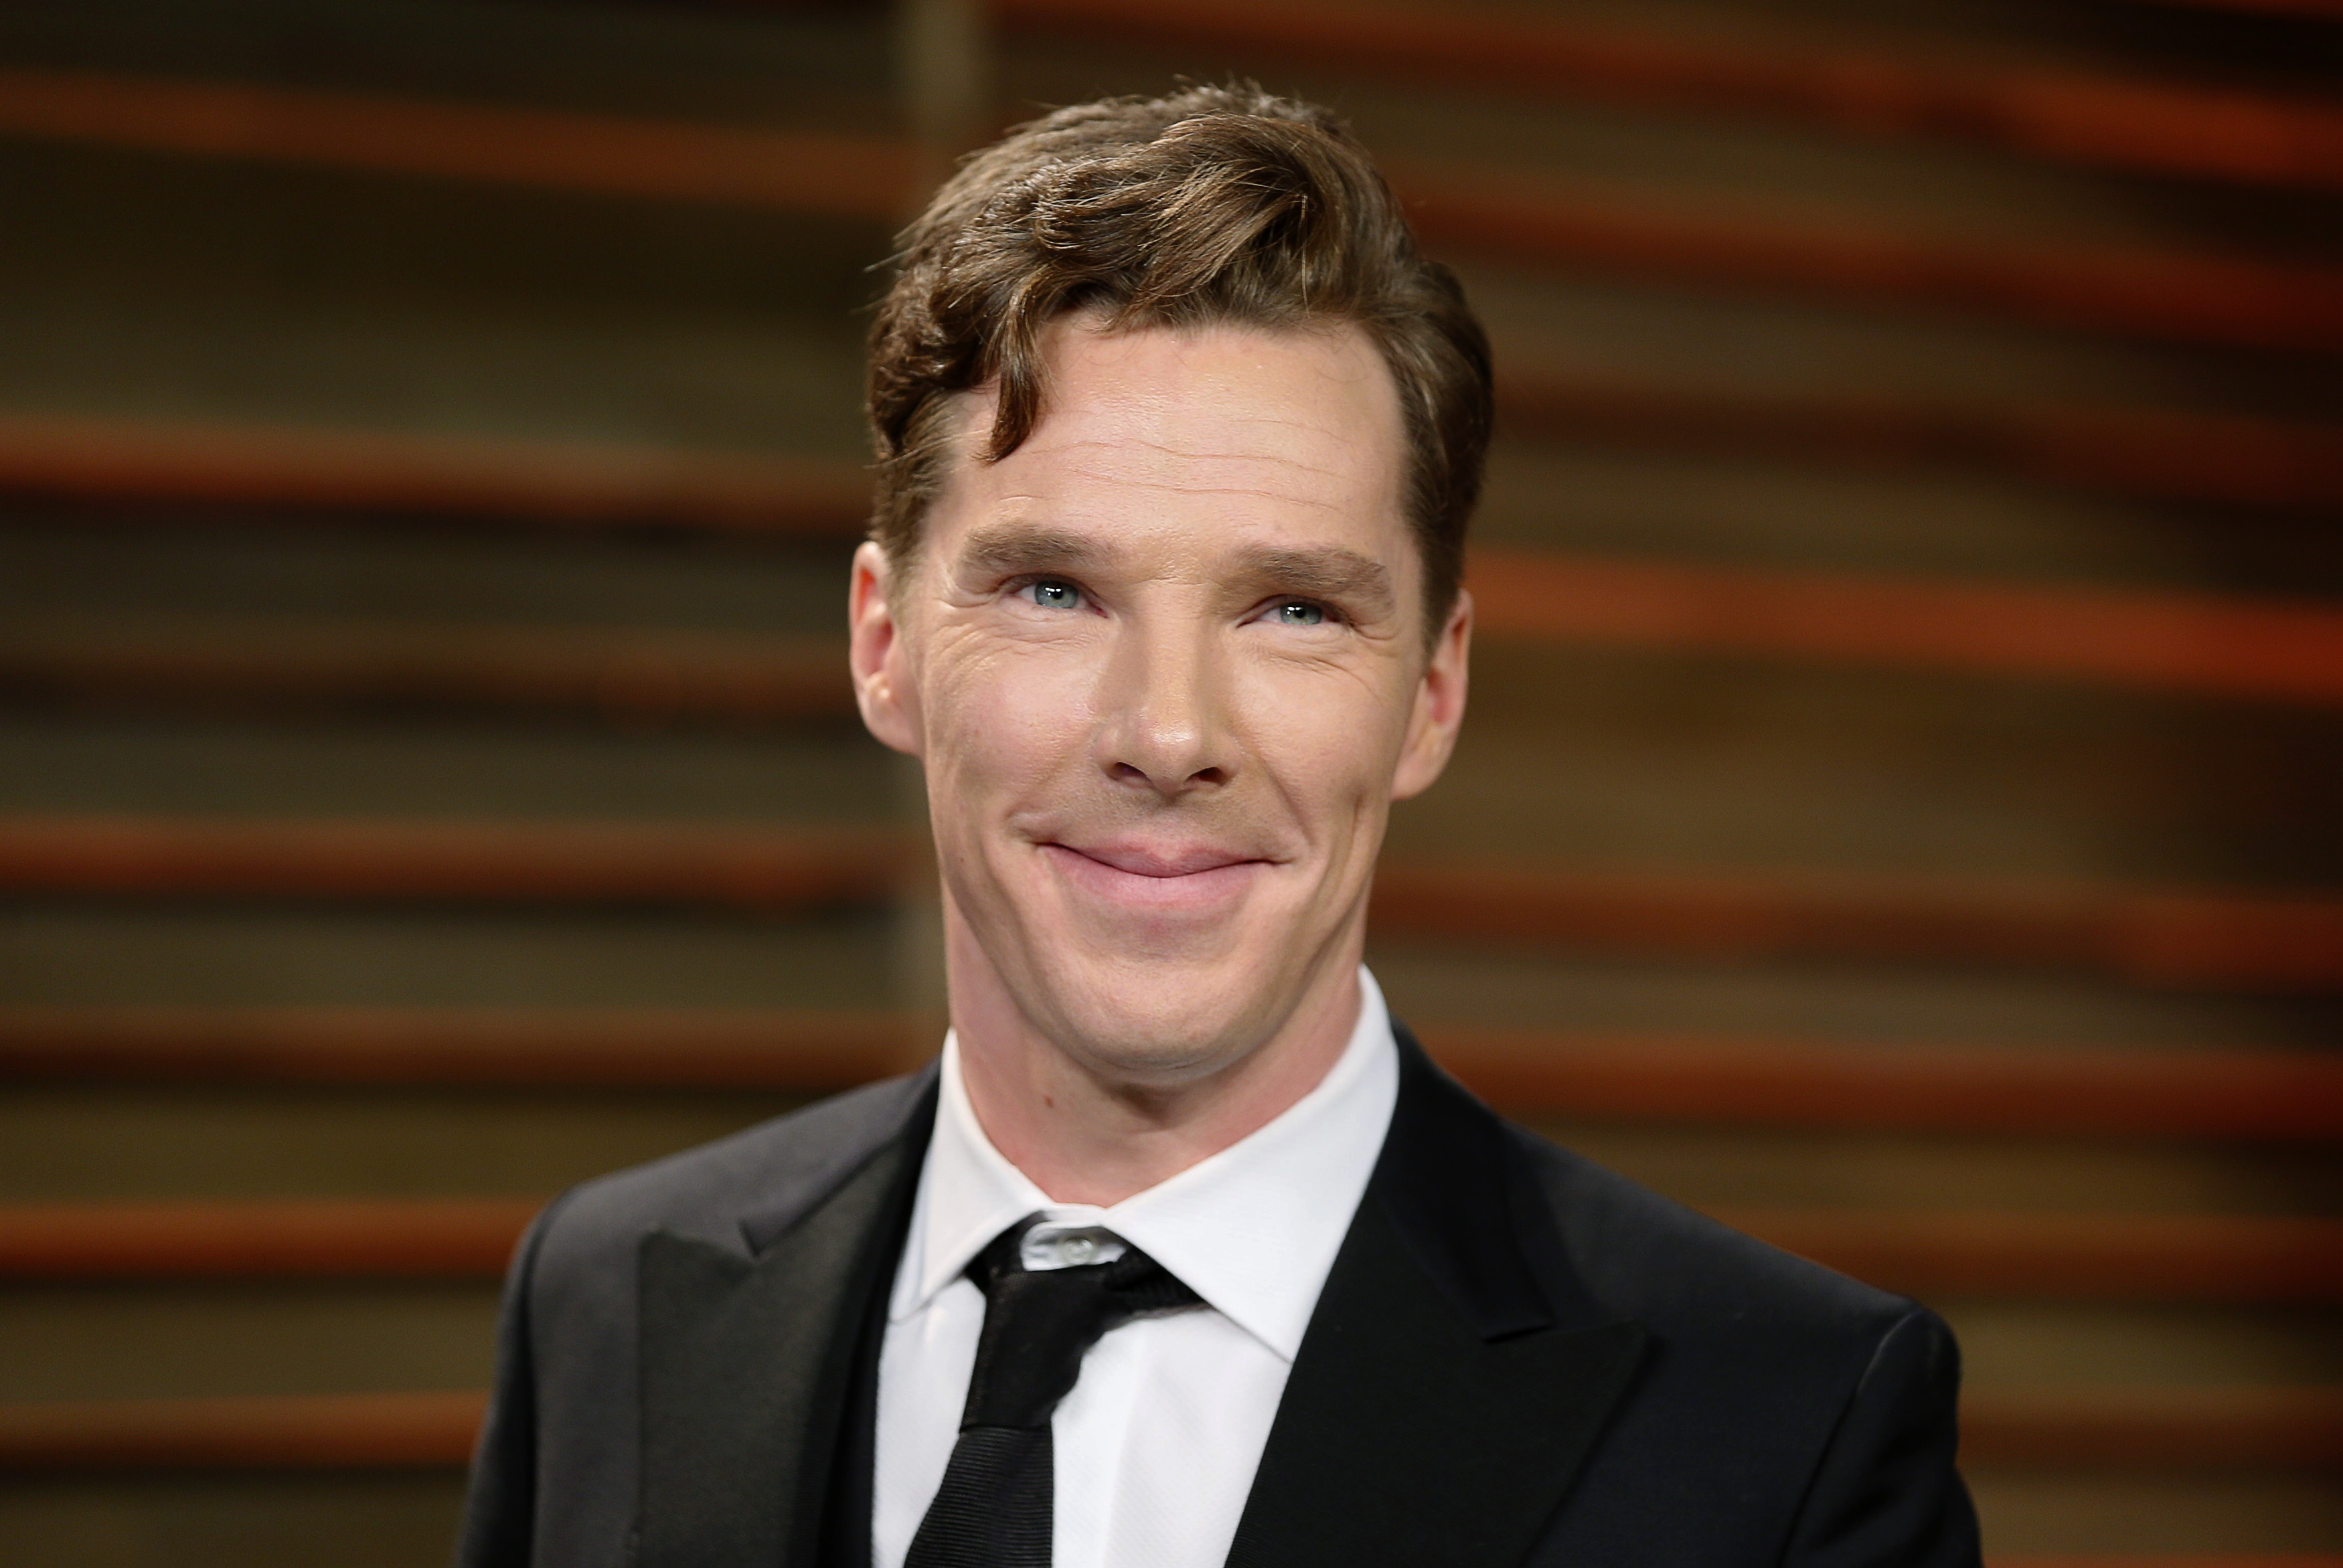 Benedict Cumberbatch arrives at the 2014 Vanity Fair Oscars Party in West Hollywood, on March 3, 2014.